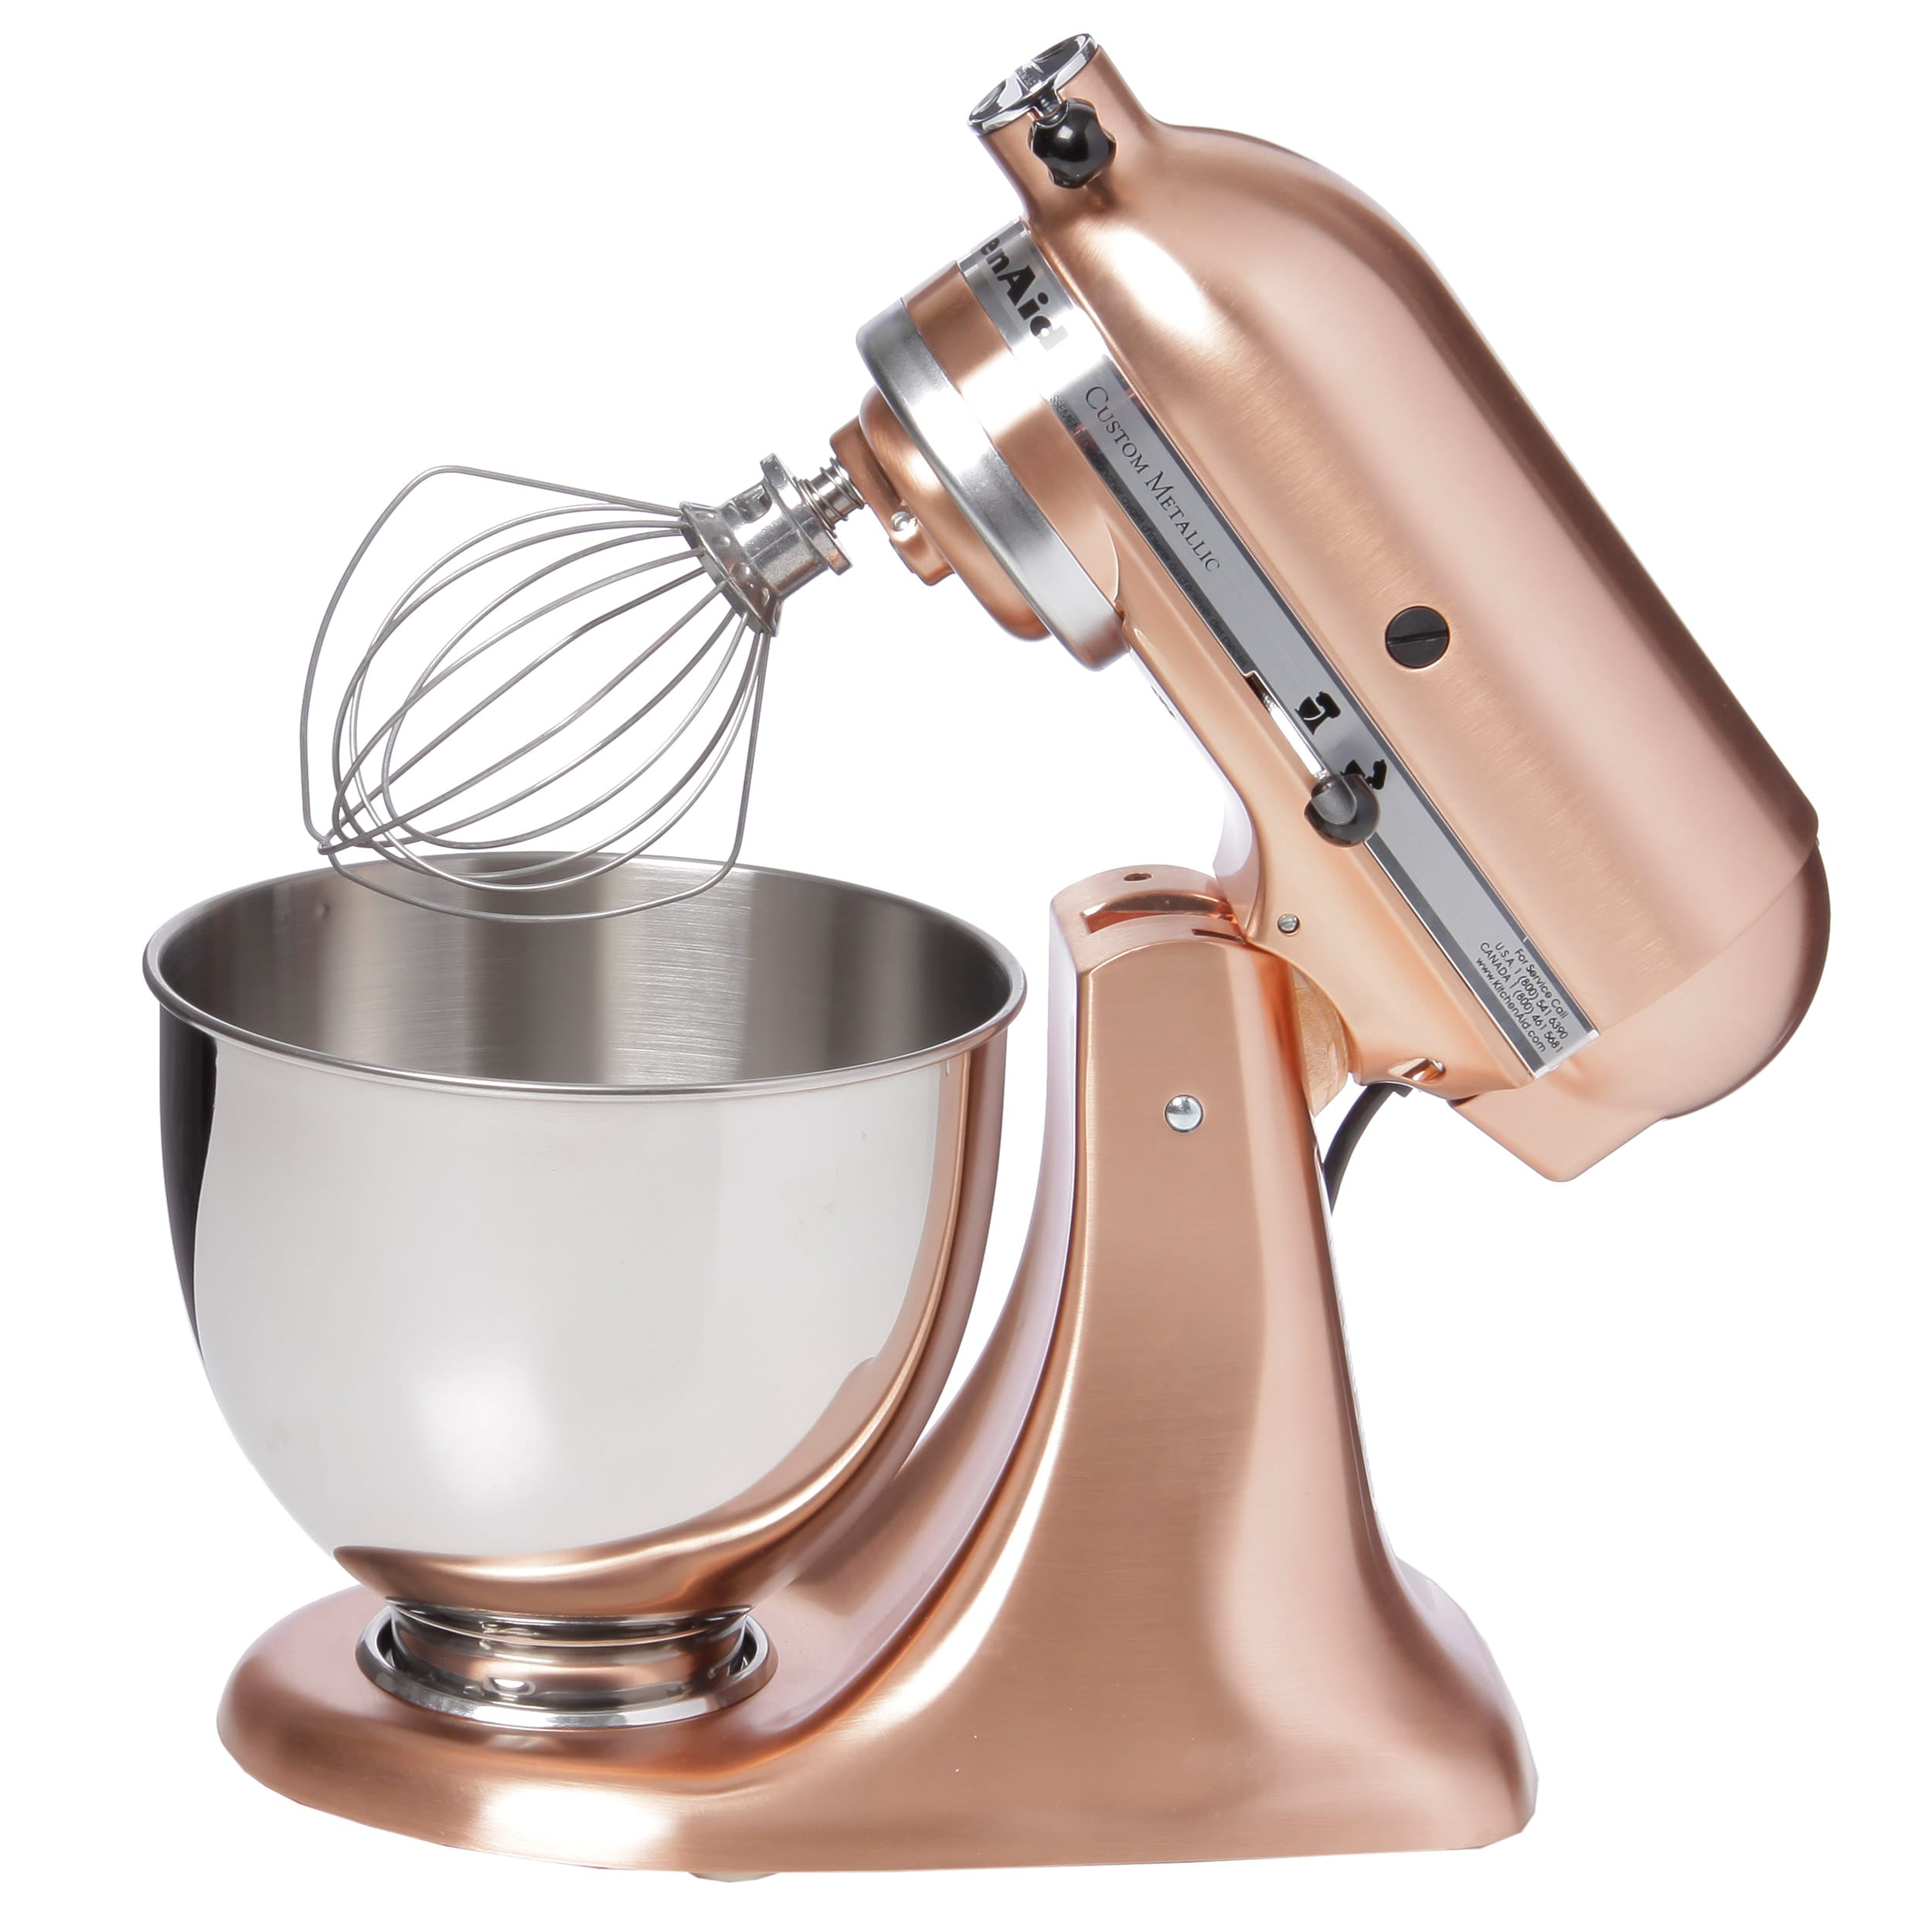 KitchenAid KSM152PSCP Satin Copper 5-quart Custom Metallic Tilt-Head ...